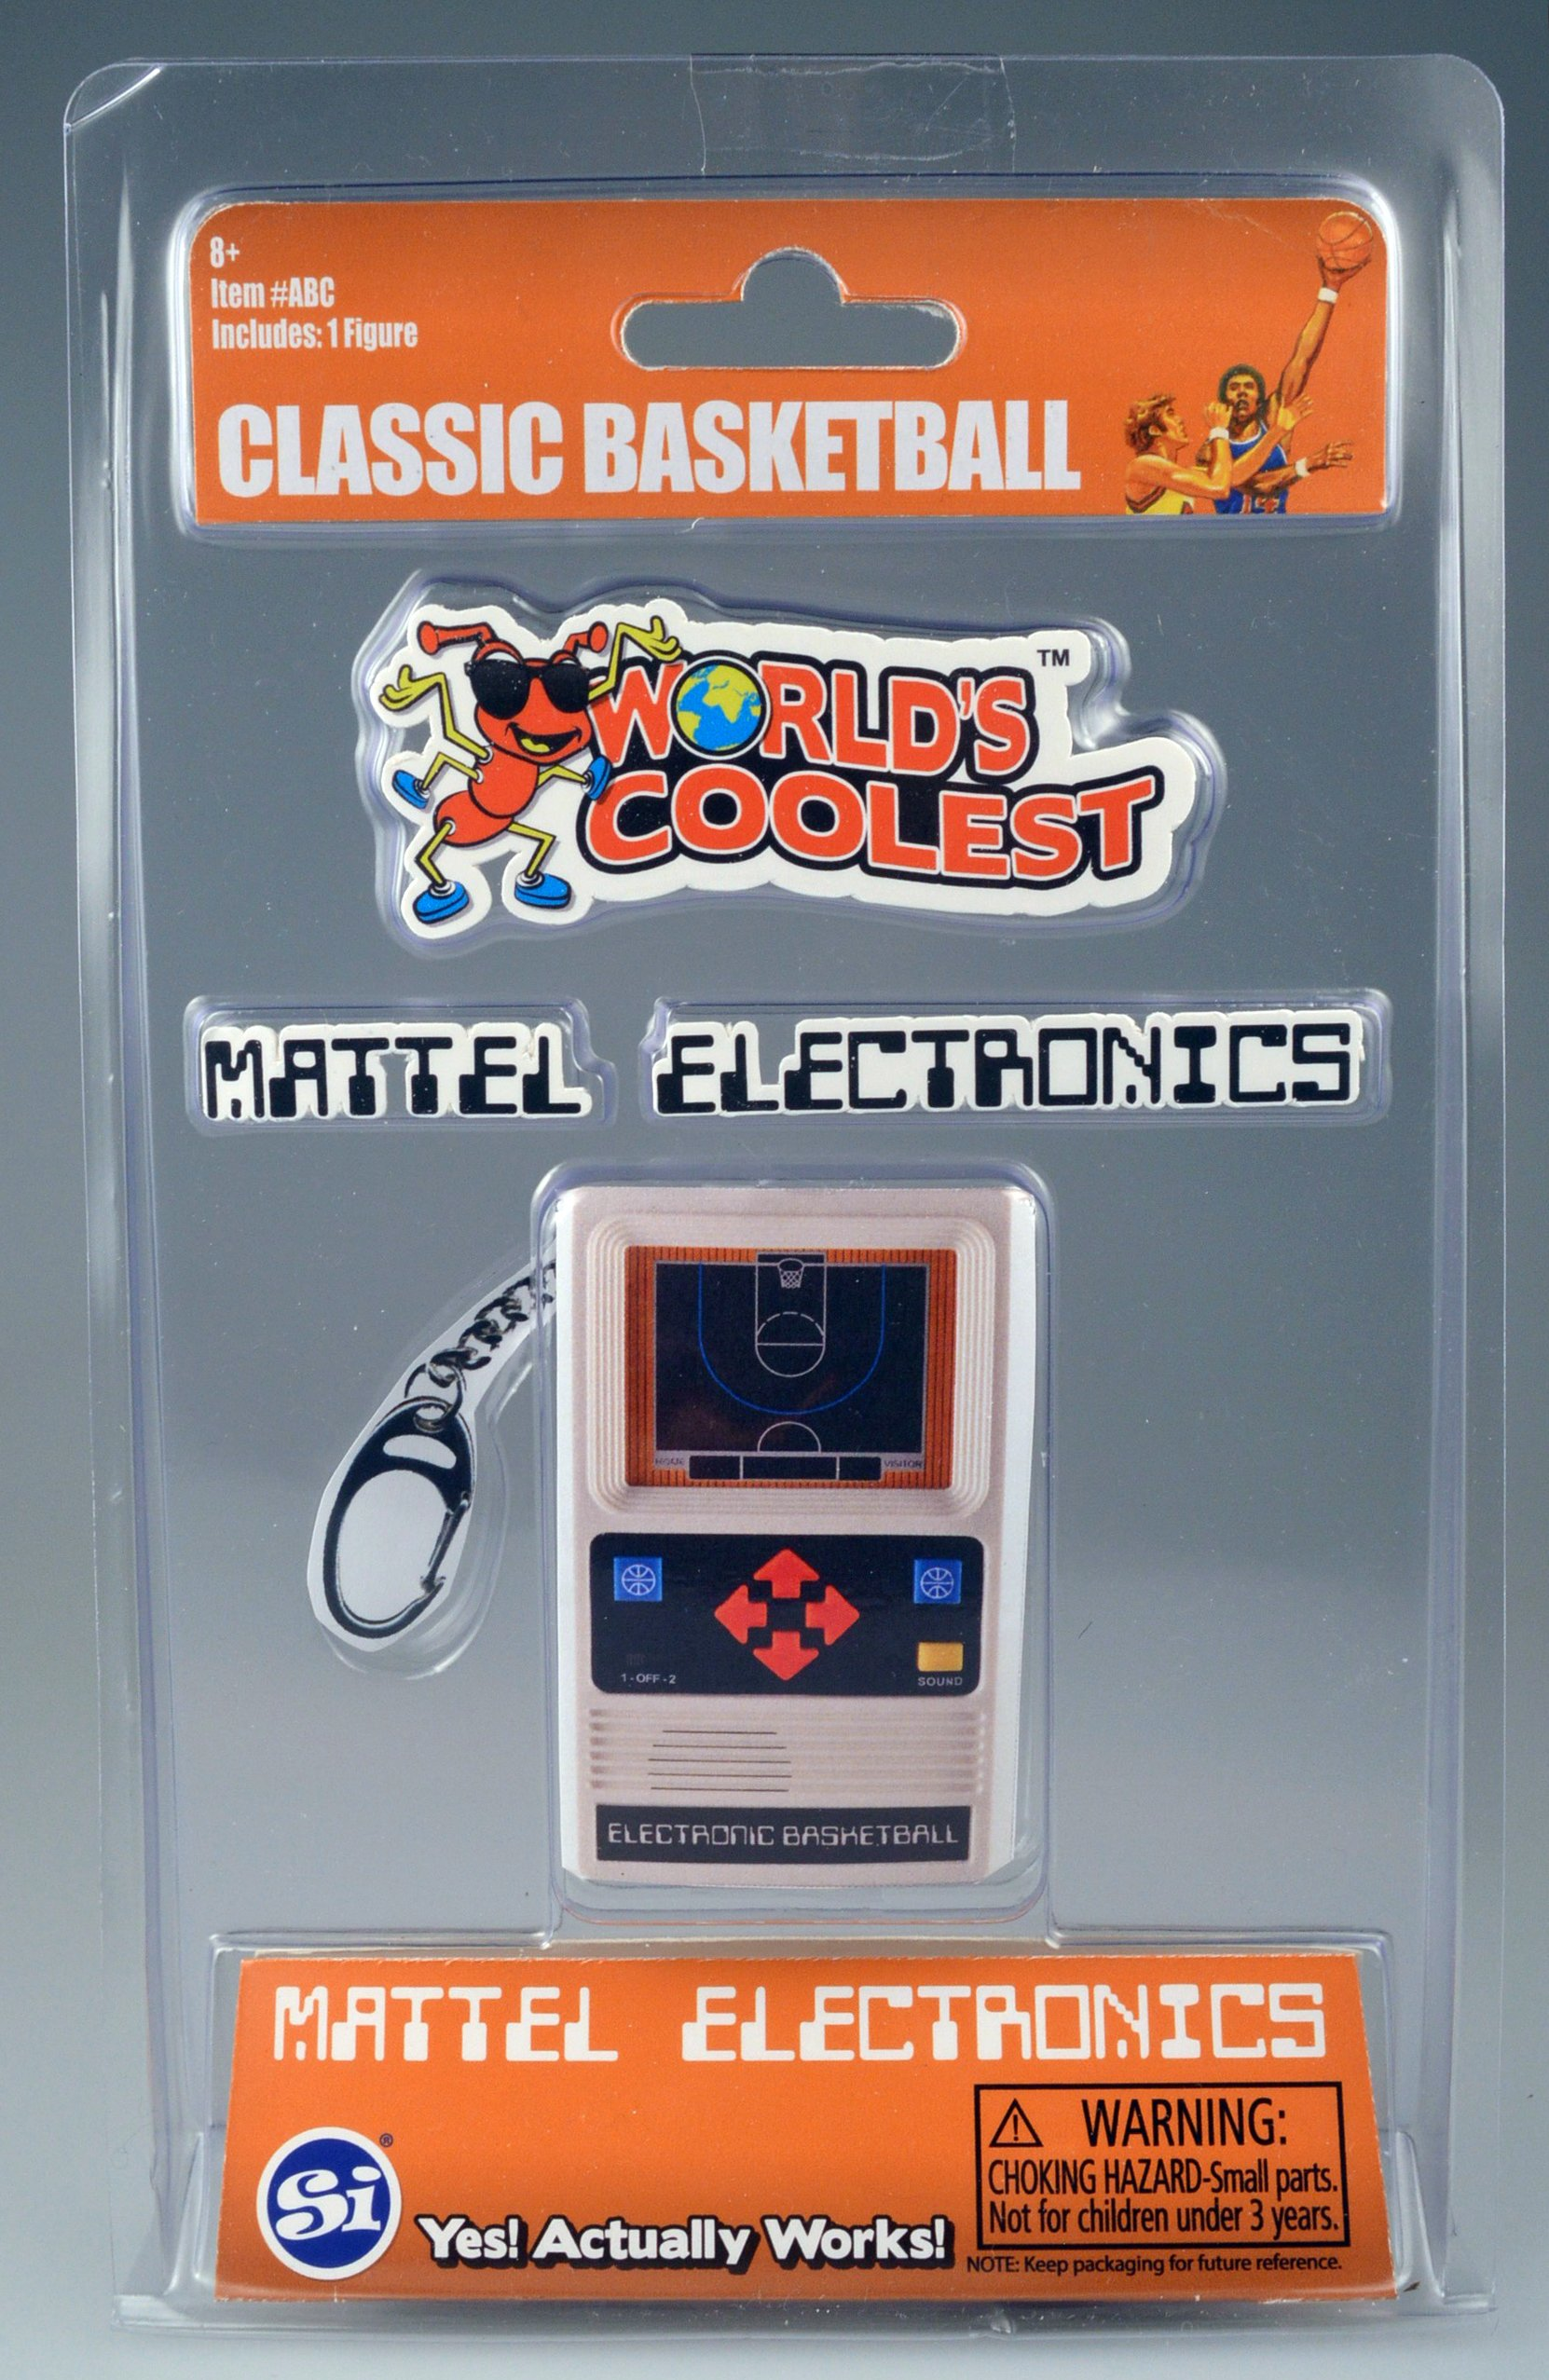 World's Largest Bubble World's Coolest Mattel Electronic Games-Basketball Handheld by World's Largest Bubble